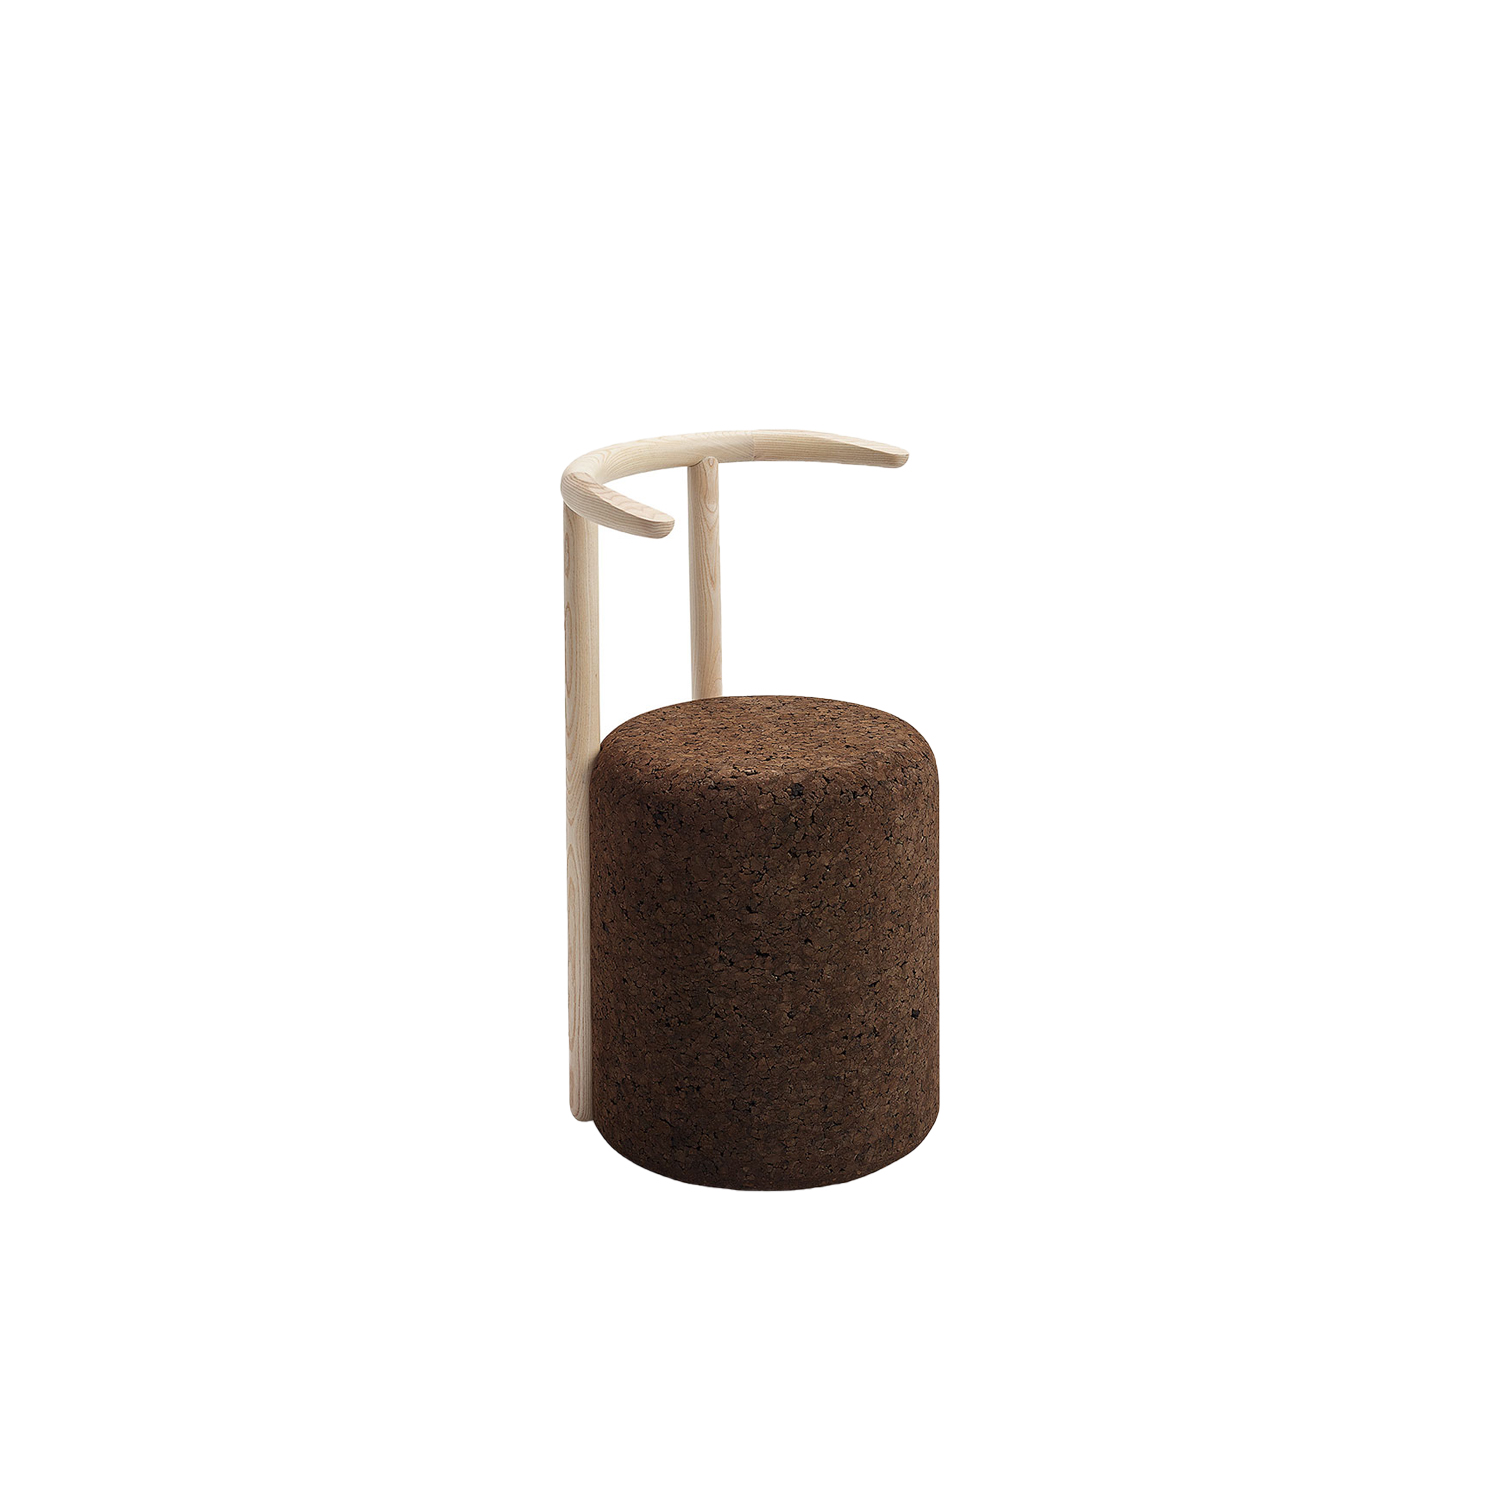 """Omega Chair 4 - It is only used cork of the branches (falca) for the manufacture of cork granules. These are block clusters in autoclave, being 100% natural process, without use of additives. Technology, developed by Sofalca, consists of injecting water vapour through the pallets that will expand and agglutinate with the resins of the cork itself. This """"cooking"""" gives also dark colour to the agglomerated cork, like chocolate. In the production of steam I used biomass, obtained on milling and cleaning the falca, what makes it truly ecological production and without waste, 95% energy self-sufficient. As a super-material, cork offers so many advantages, because in addition to its excellent thermic, acoustic insulation and anti vibration characteristic, it is also a CO2 sink playing a key-role in the environment. 